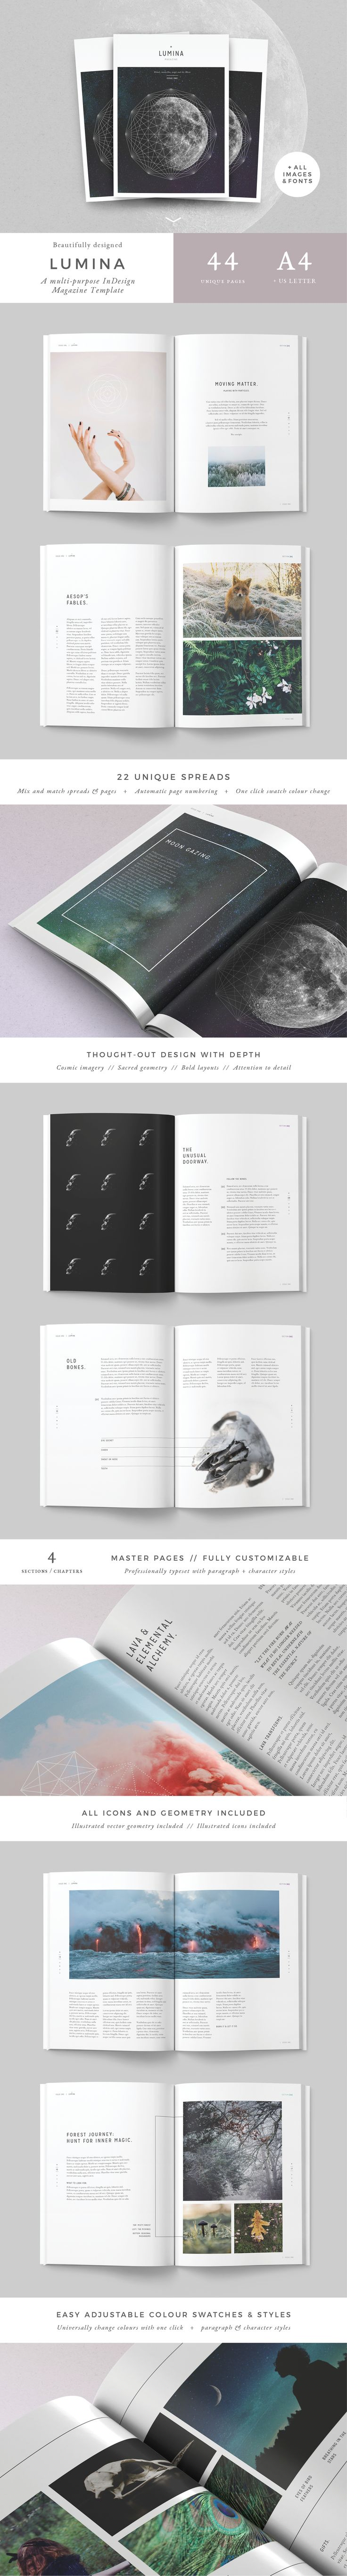 A beautiful multipurpose image based magazine, booklet, brochure or folio. Clean, modern and fully customisable. Ideal for all types of publications: New Age magazines, Astrology magazines, health and science publications, digital ebooks, photography, fas…